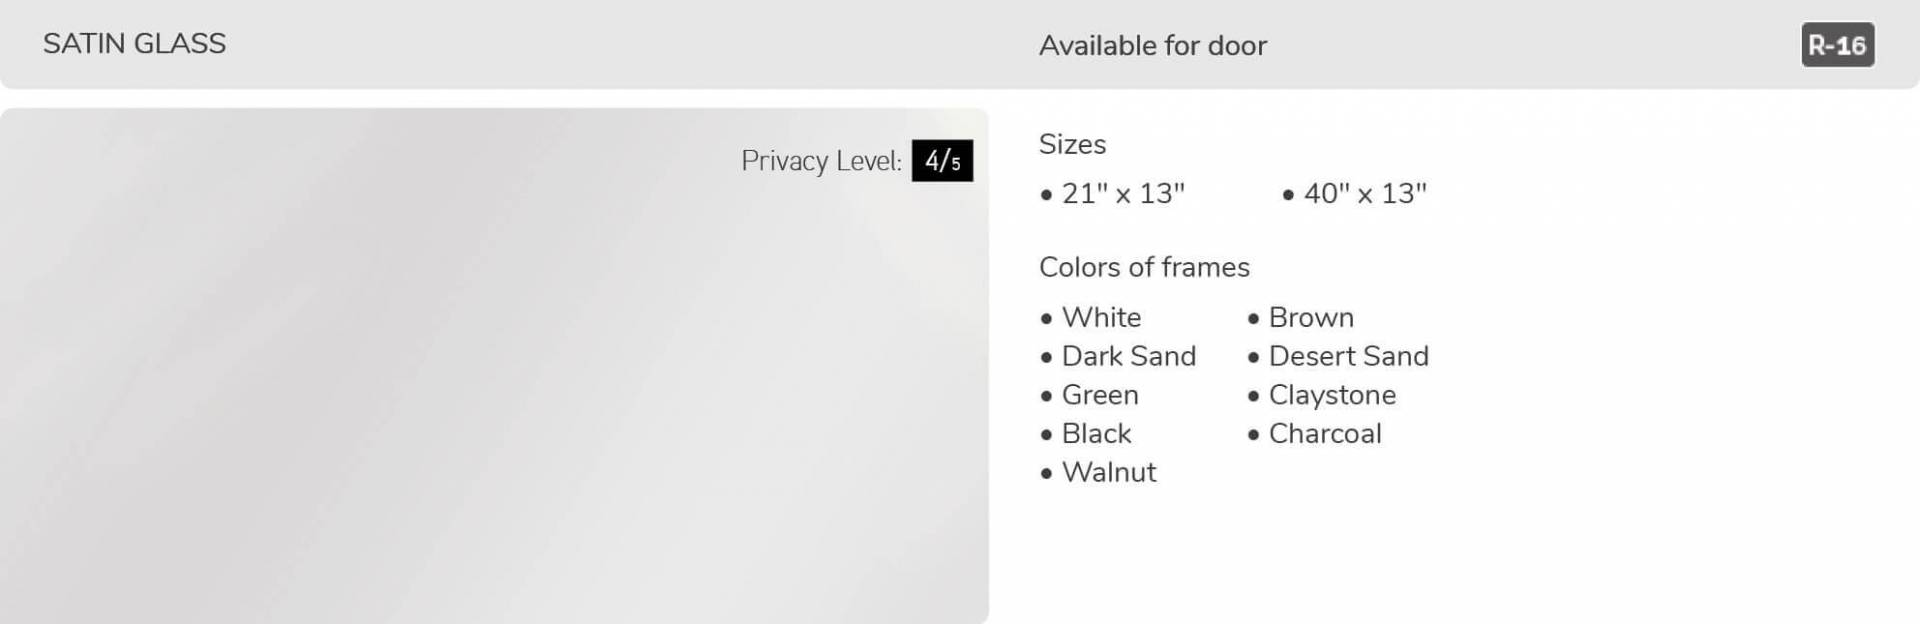 Satin glass, 21' x 13' and 40' x 13', available for door R-16